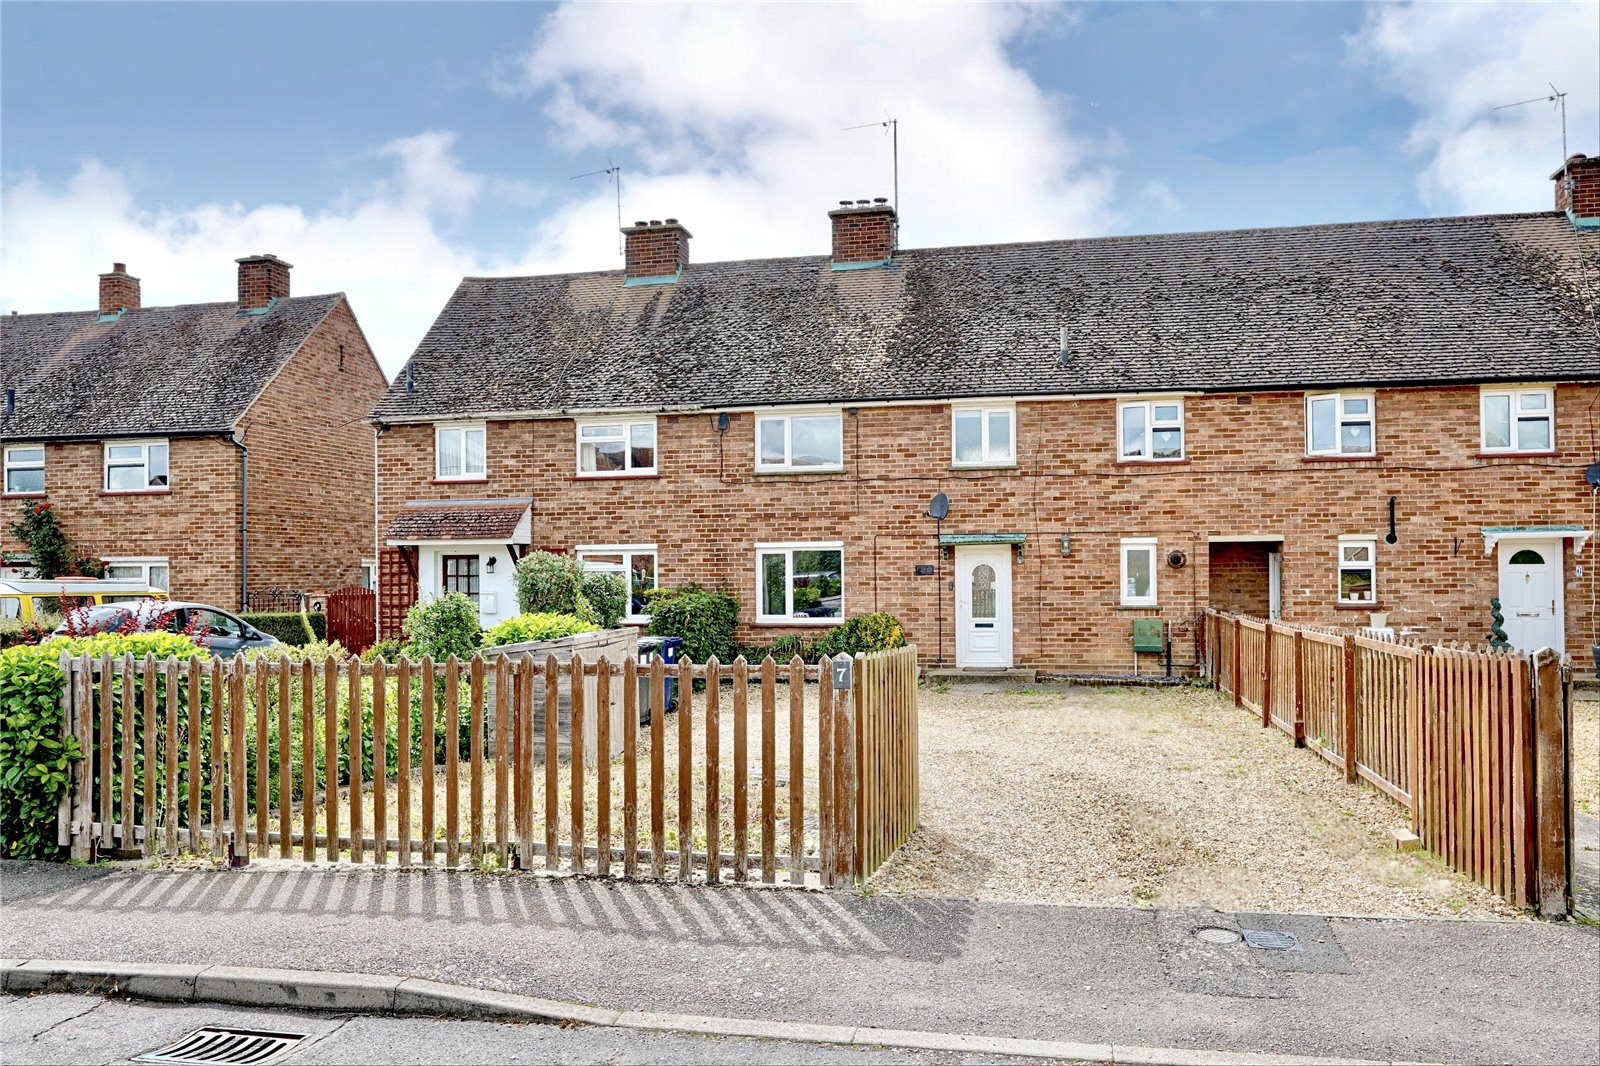 3 bed house for sale in Latin Close, Offord Cluny, PE19